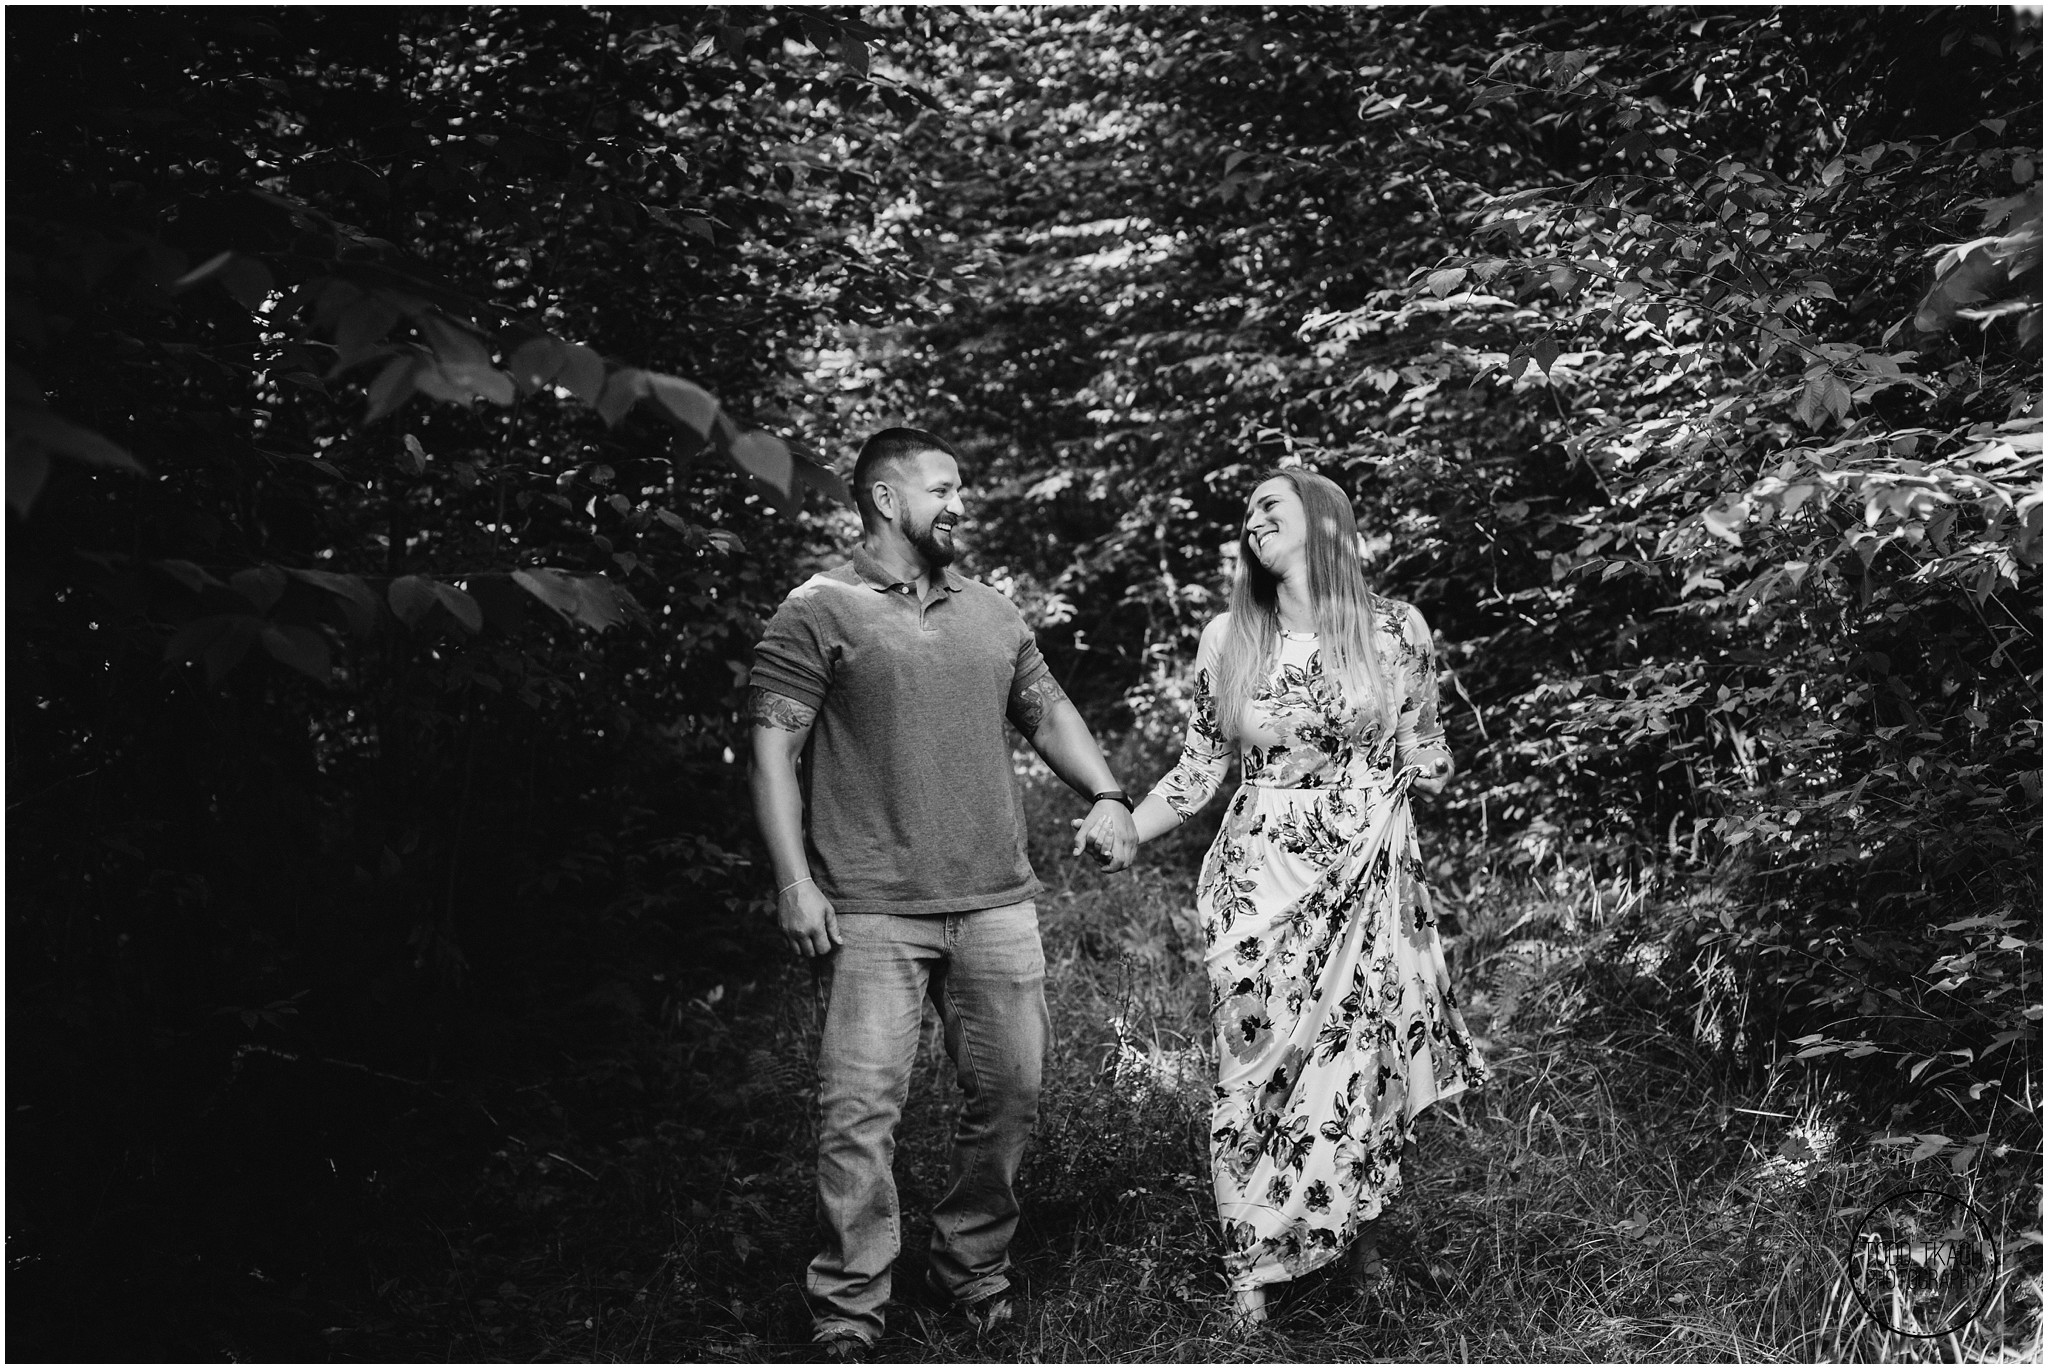 Kim & Brandon Engagement - Forest Walk Black and White